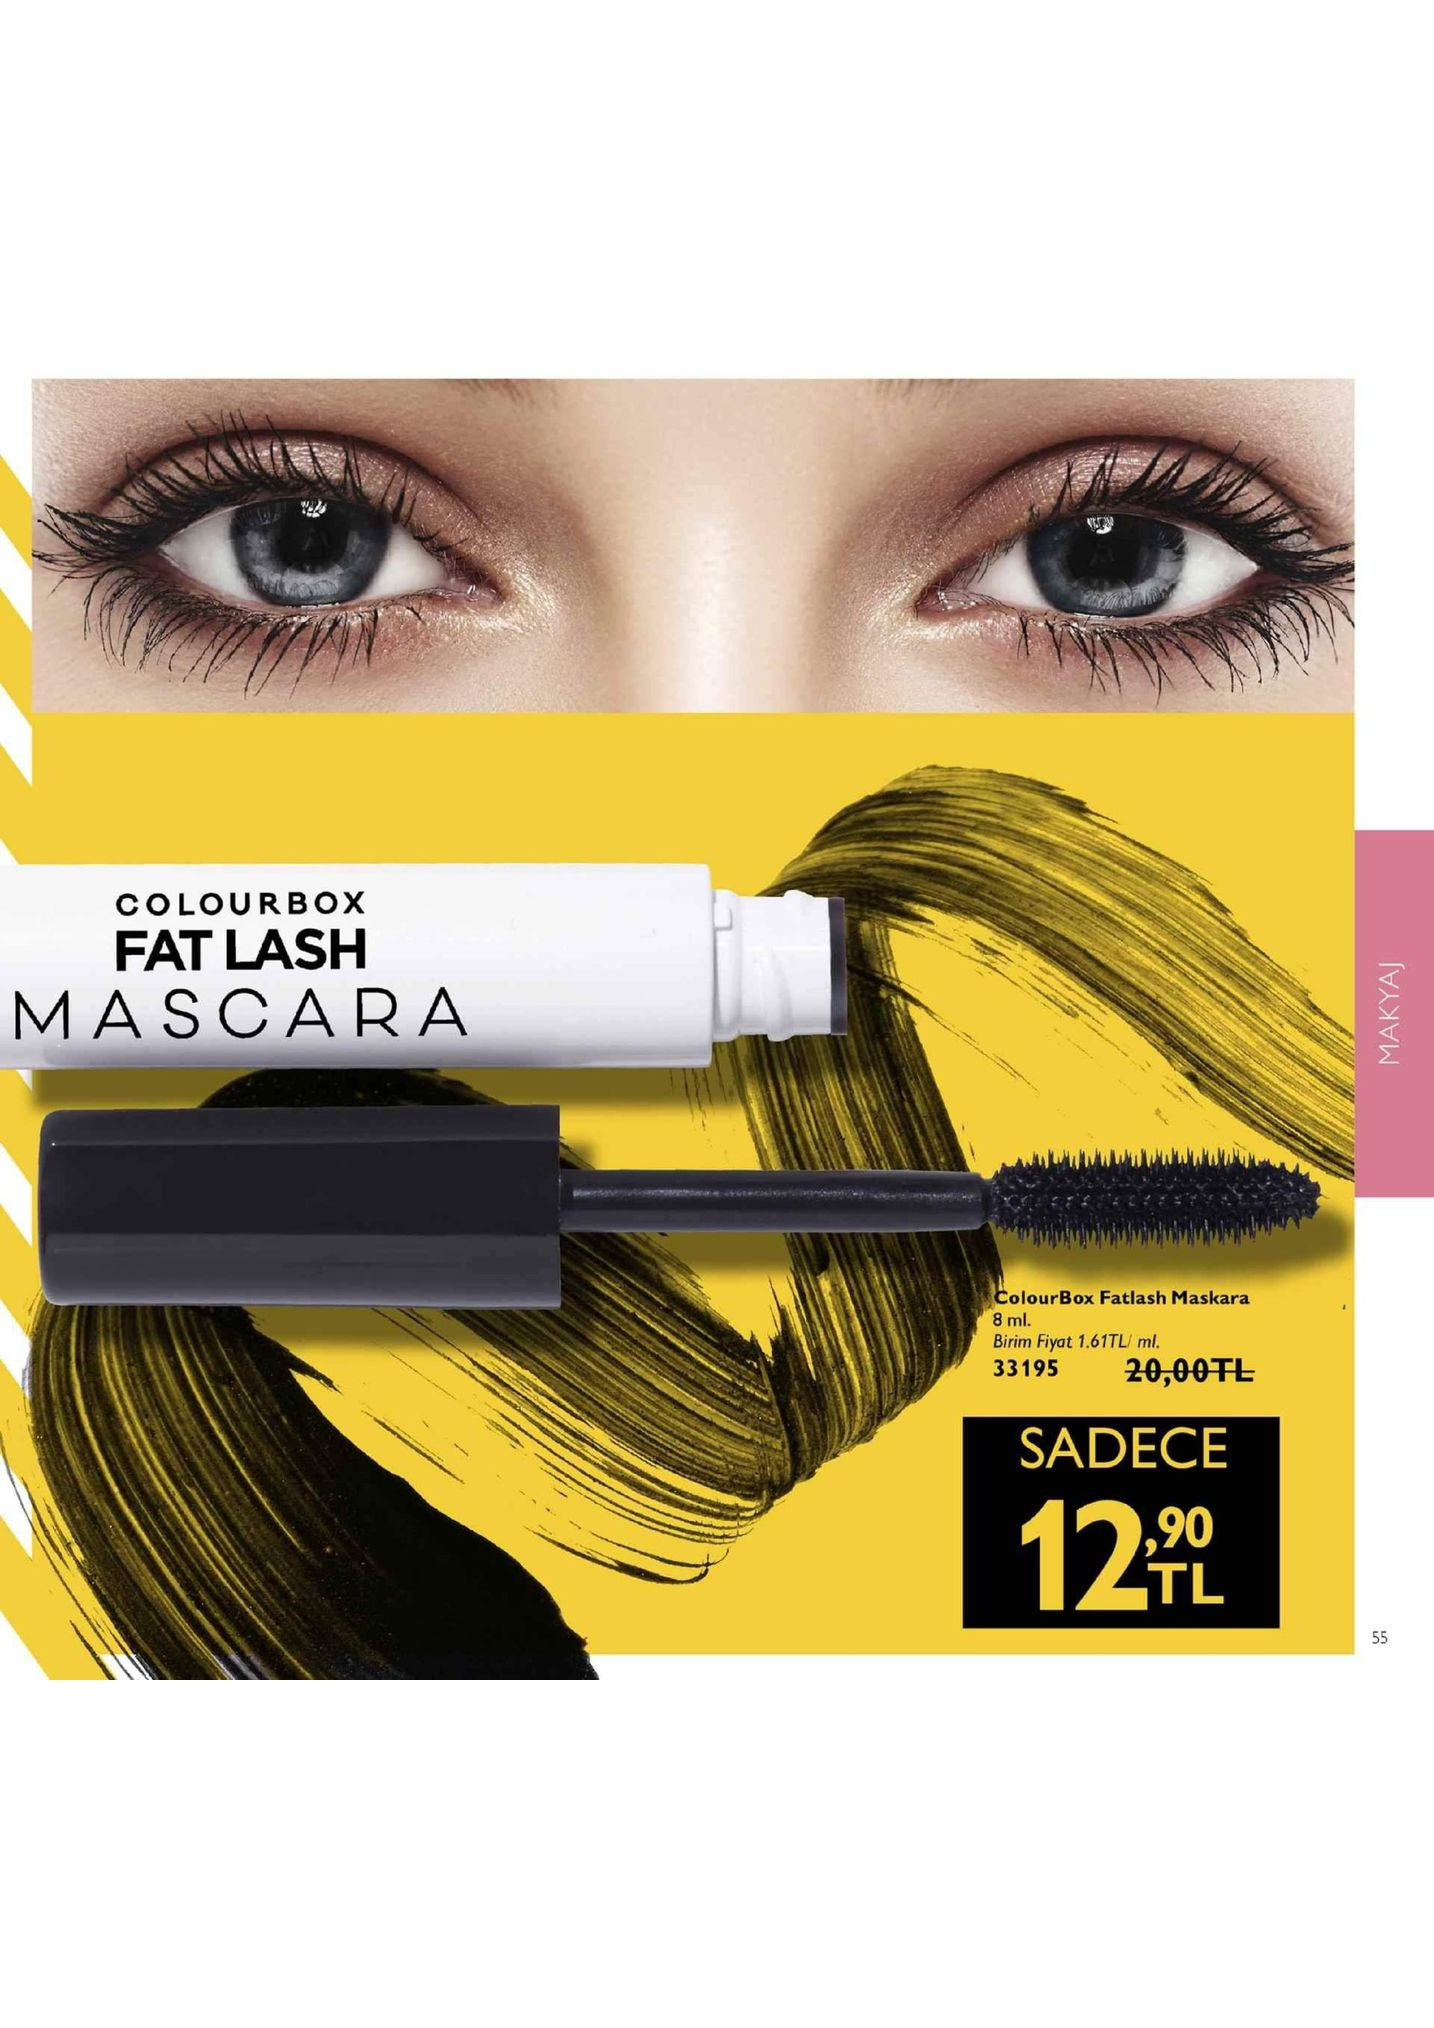 colourbox fat lash mascara <c colourbox fatlash maskara birim fiyat 1.61tl/ mil 33195 20,00tl sadece 90 tl